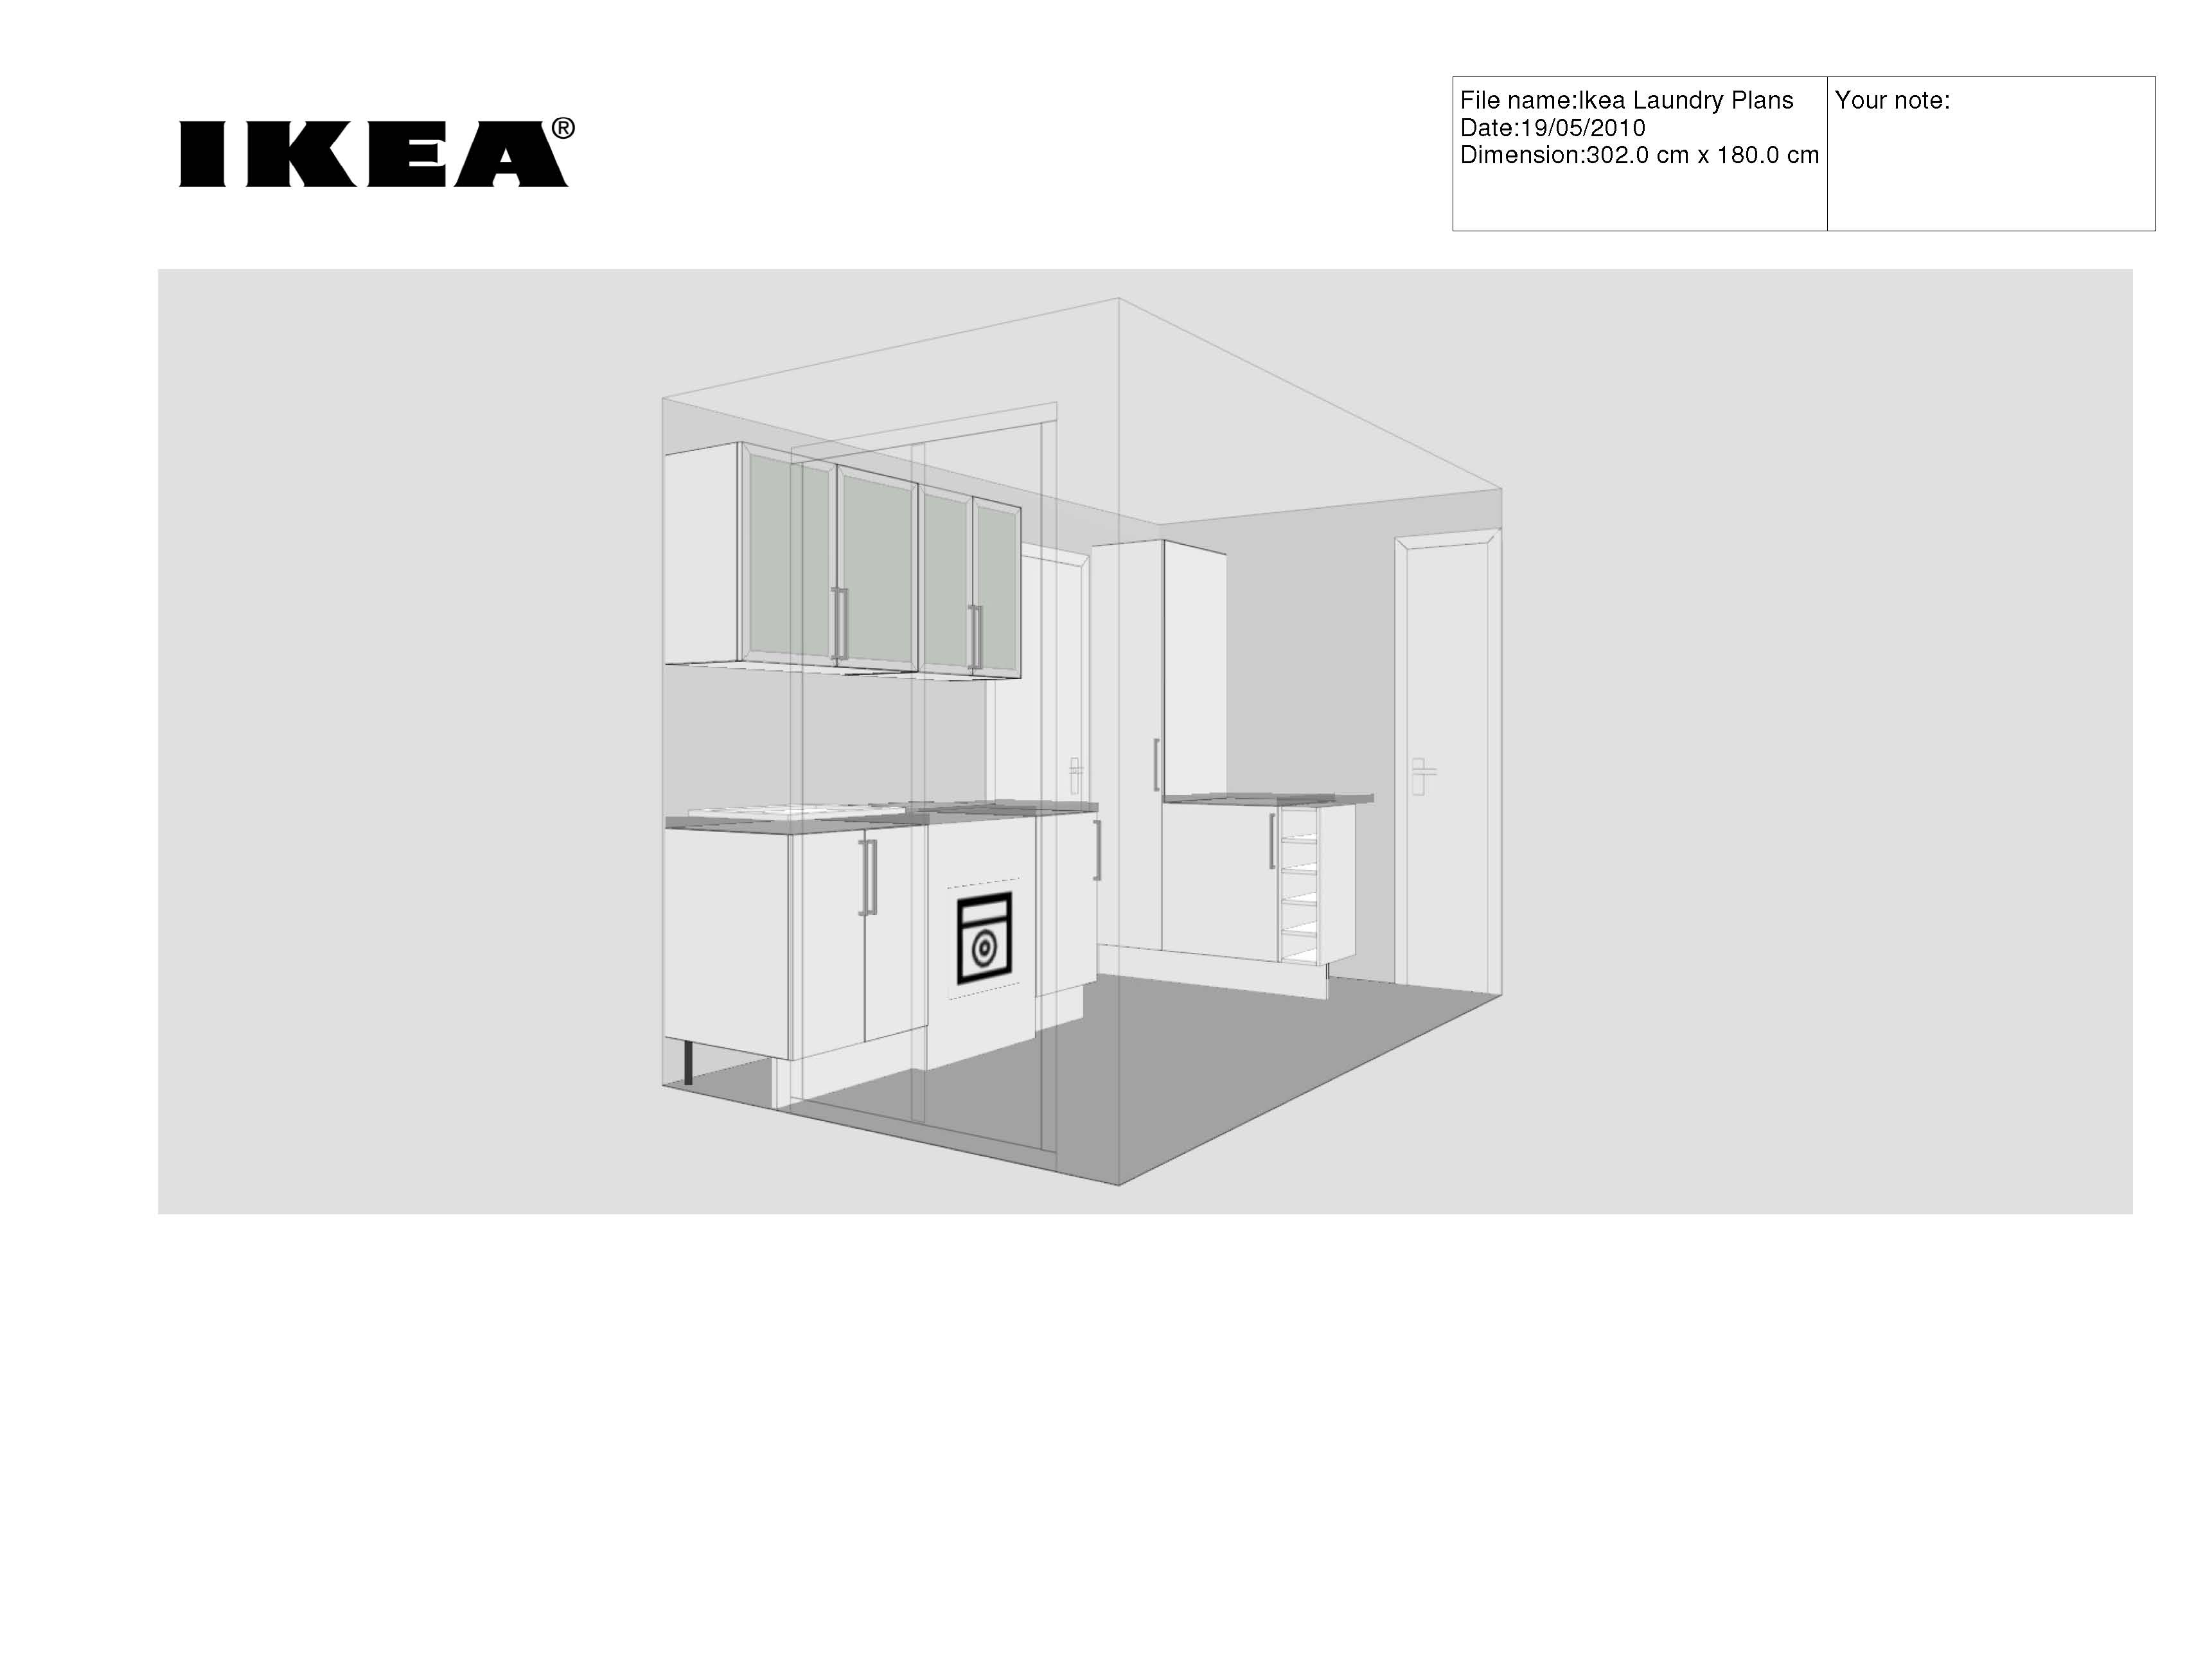 Ikea Home Planner Mac Download Actualize Your Dream With Ikea